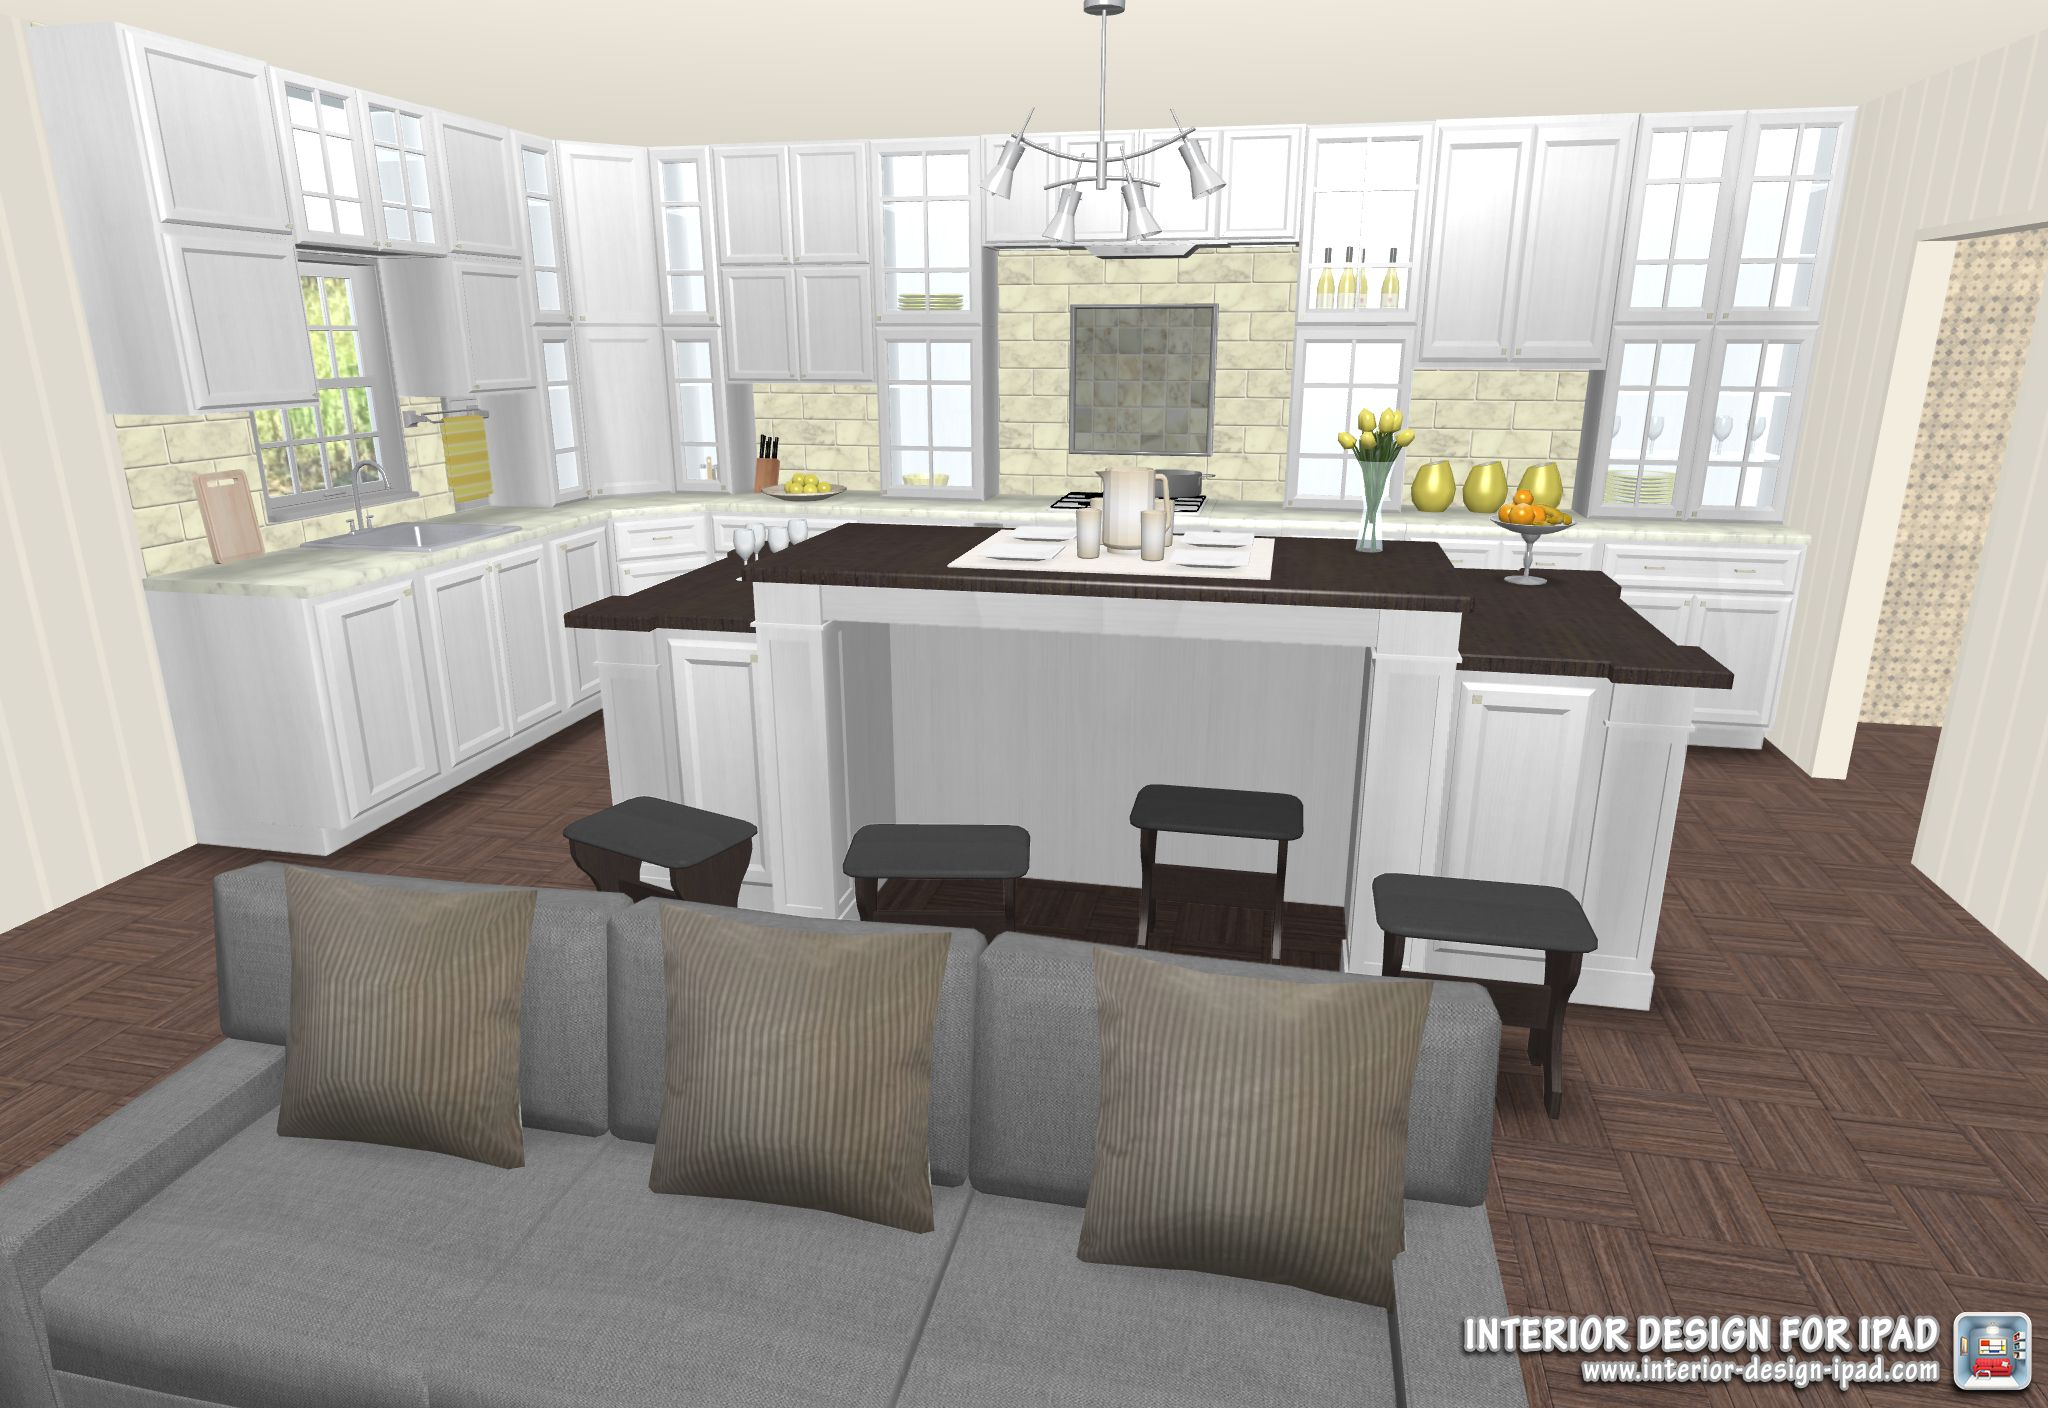 check out this open kitchen design with the interior design for ipad app free kitchen design on kitchen remodel apps id=67042